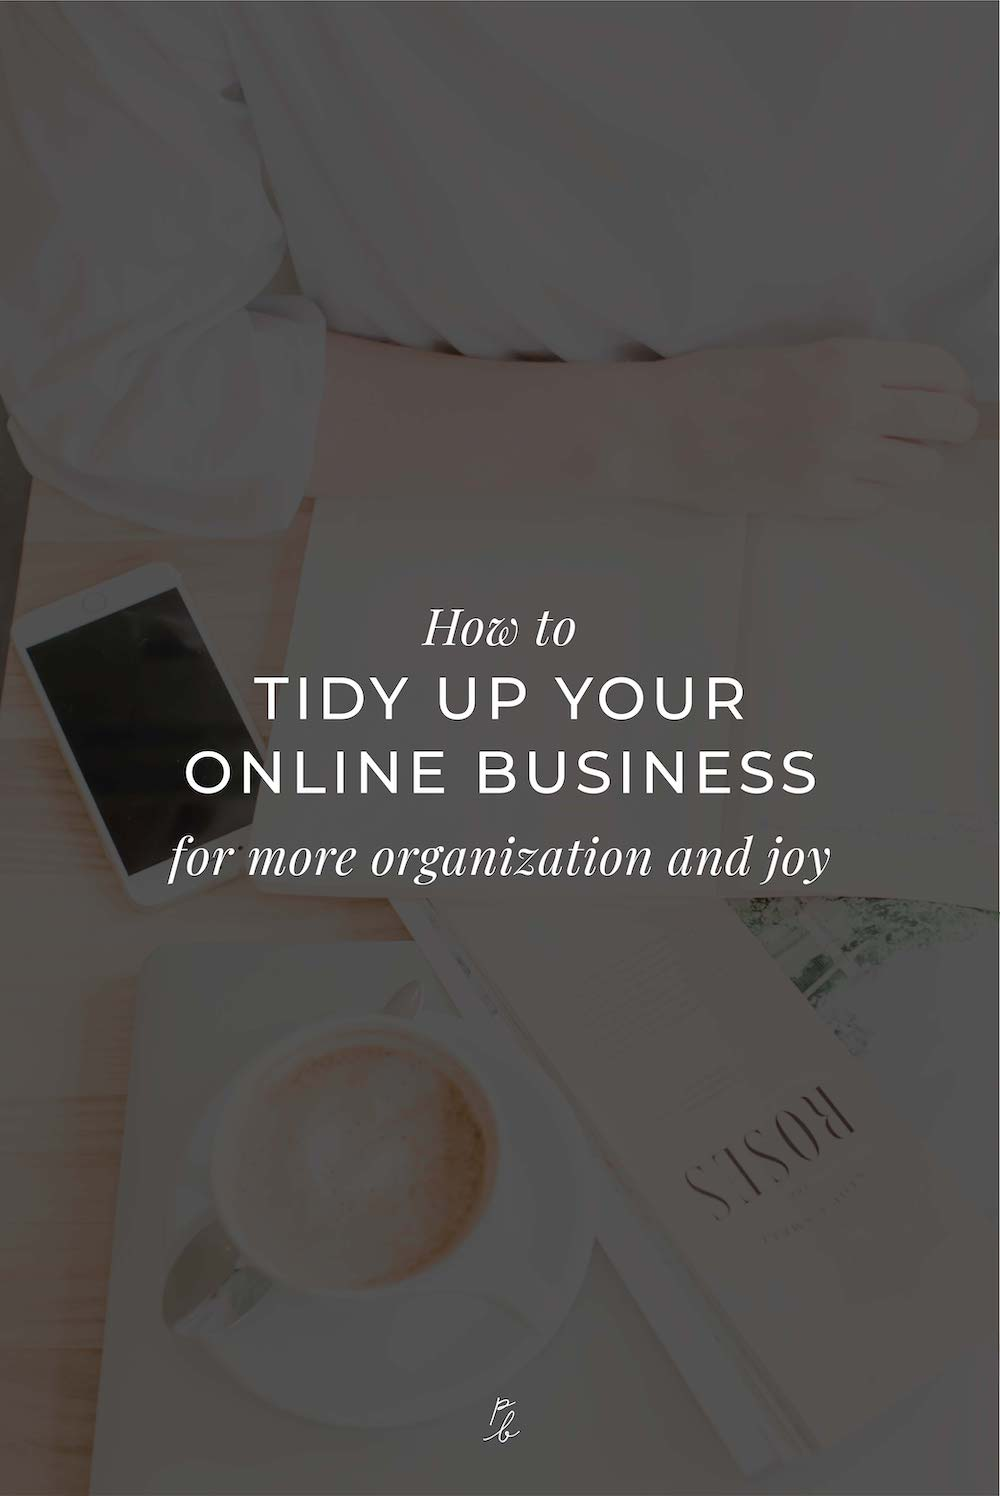 2-How to tidy up your online business for more organization and joy.jpg